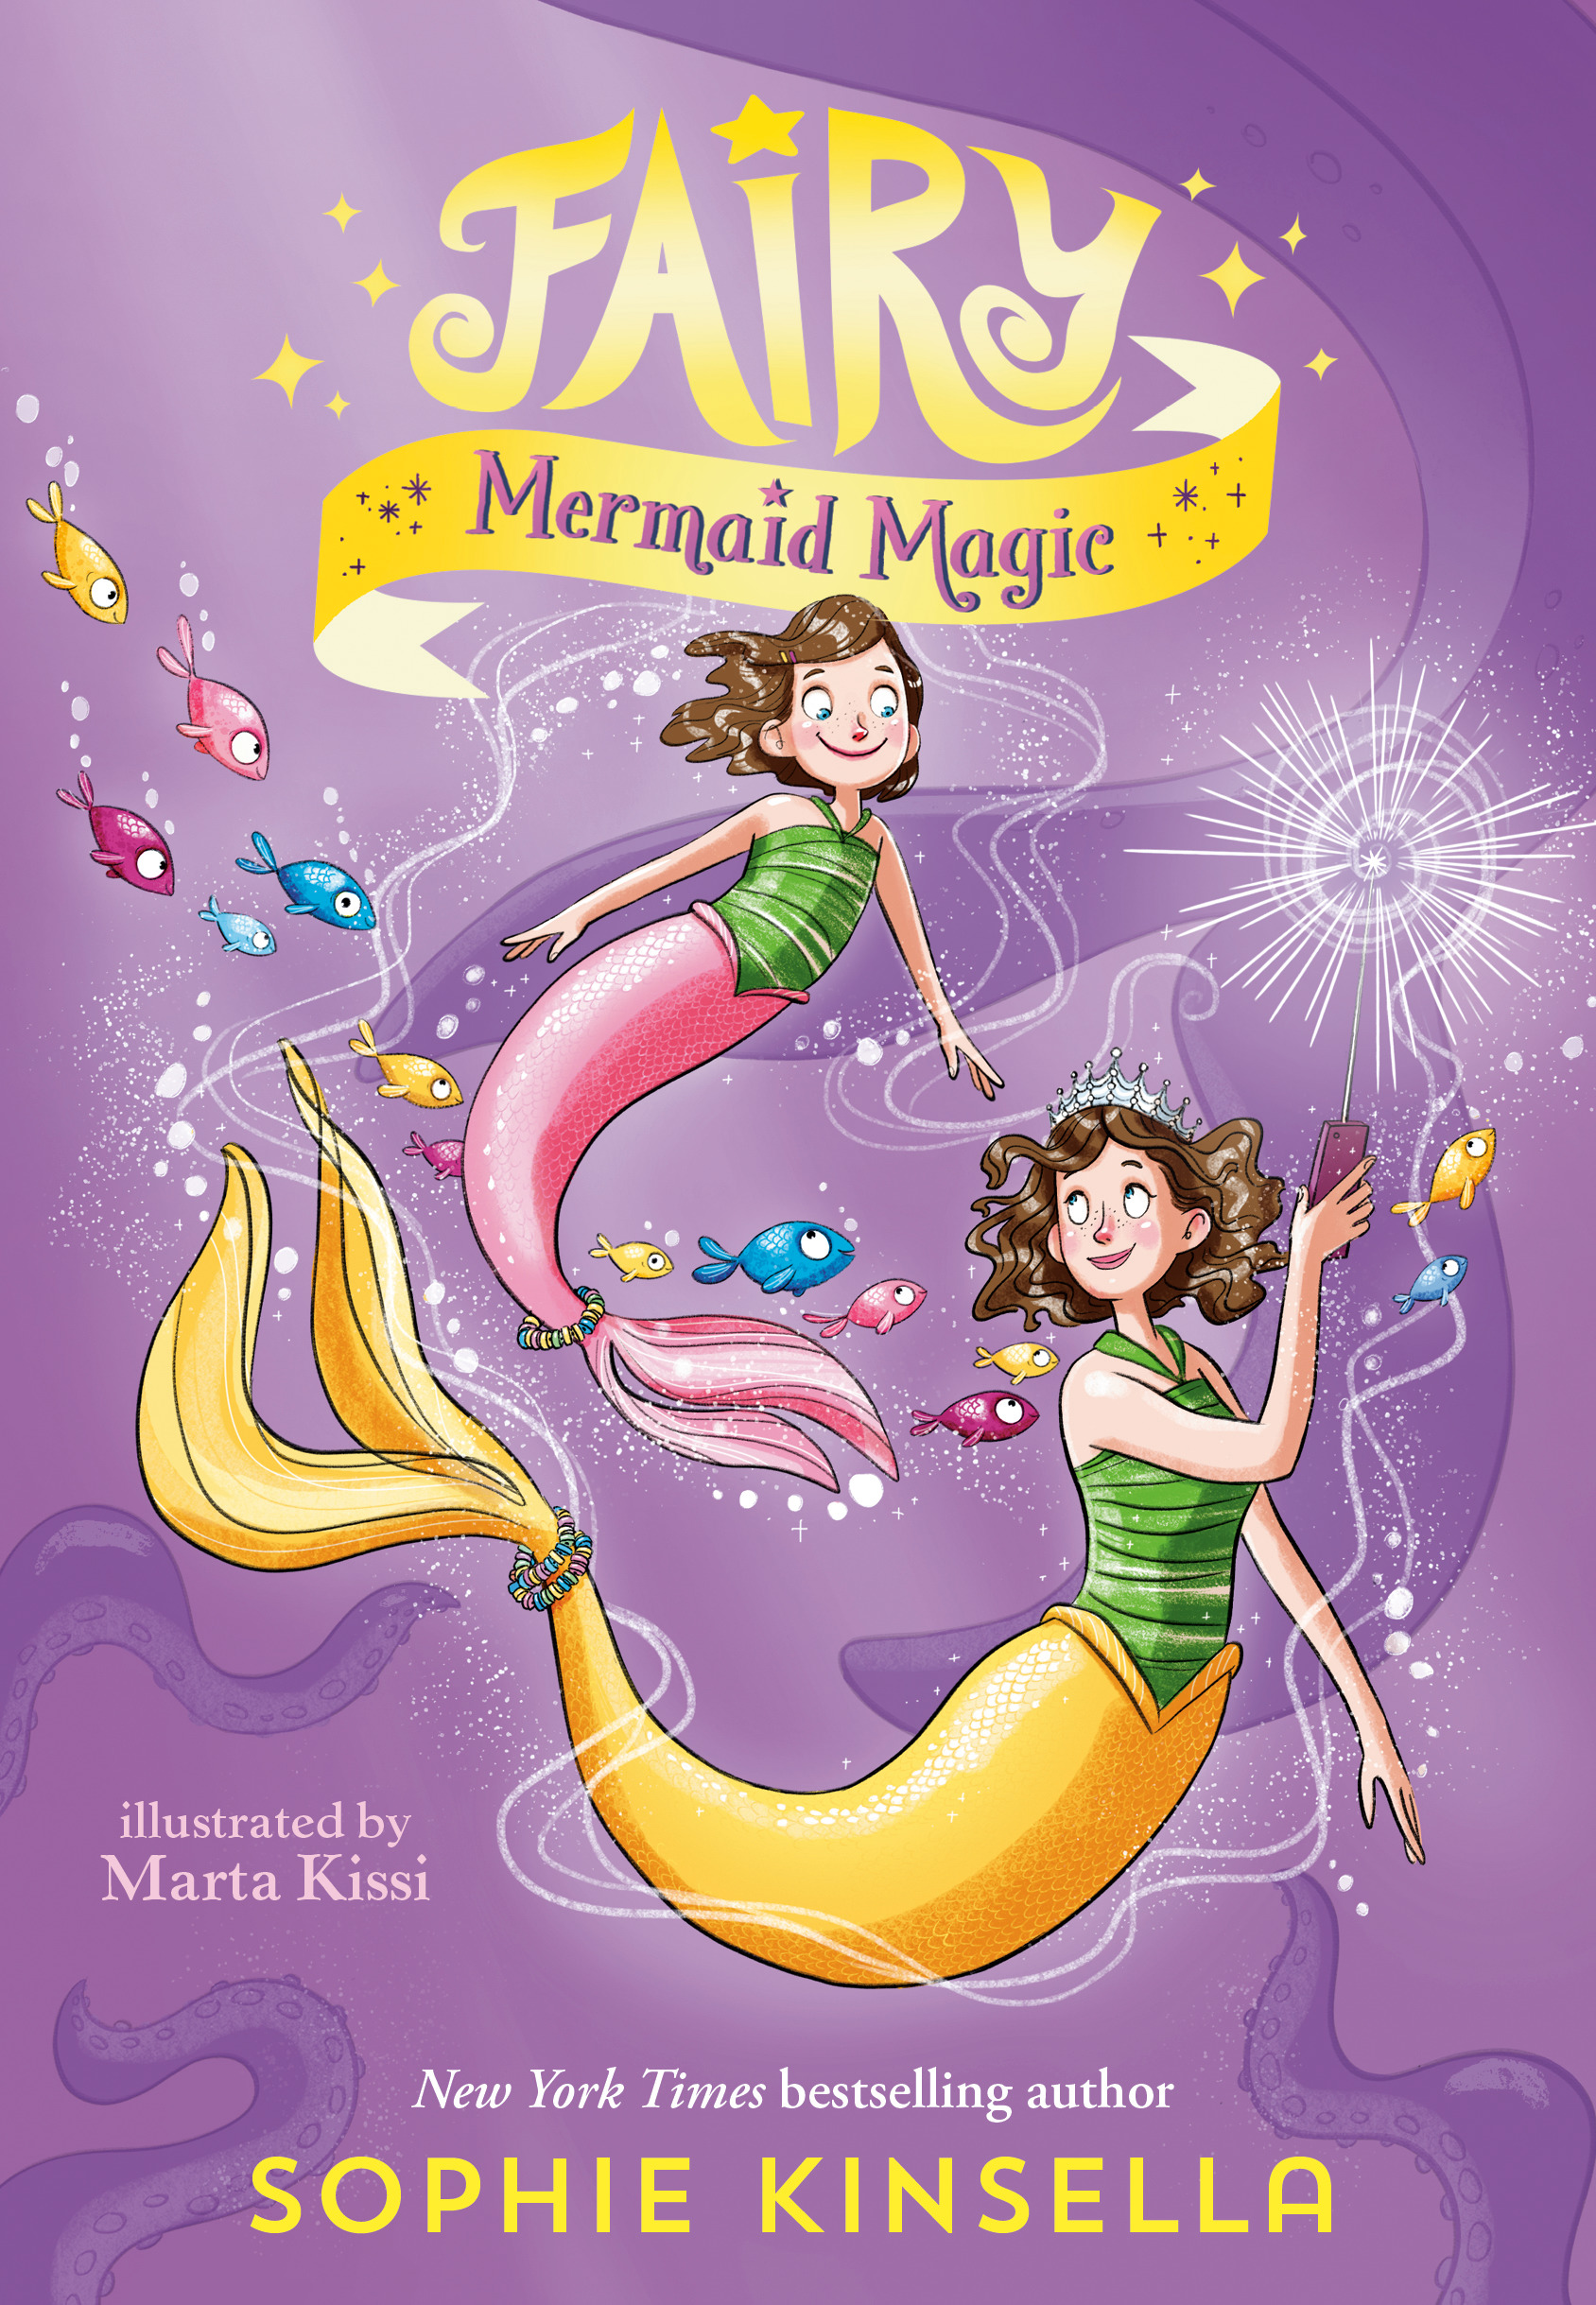 Fairy Mermaid Magic (US cover)